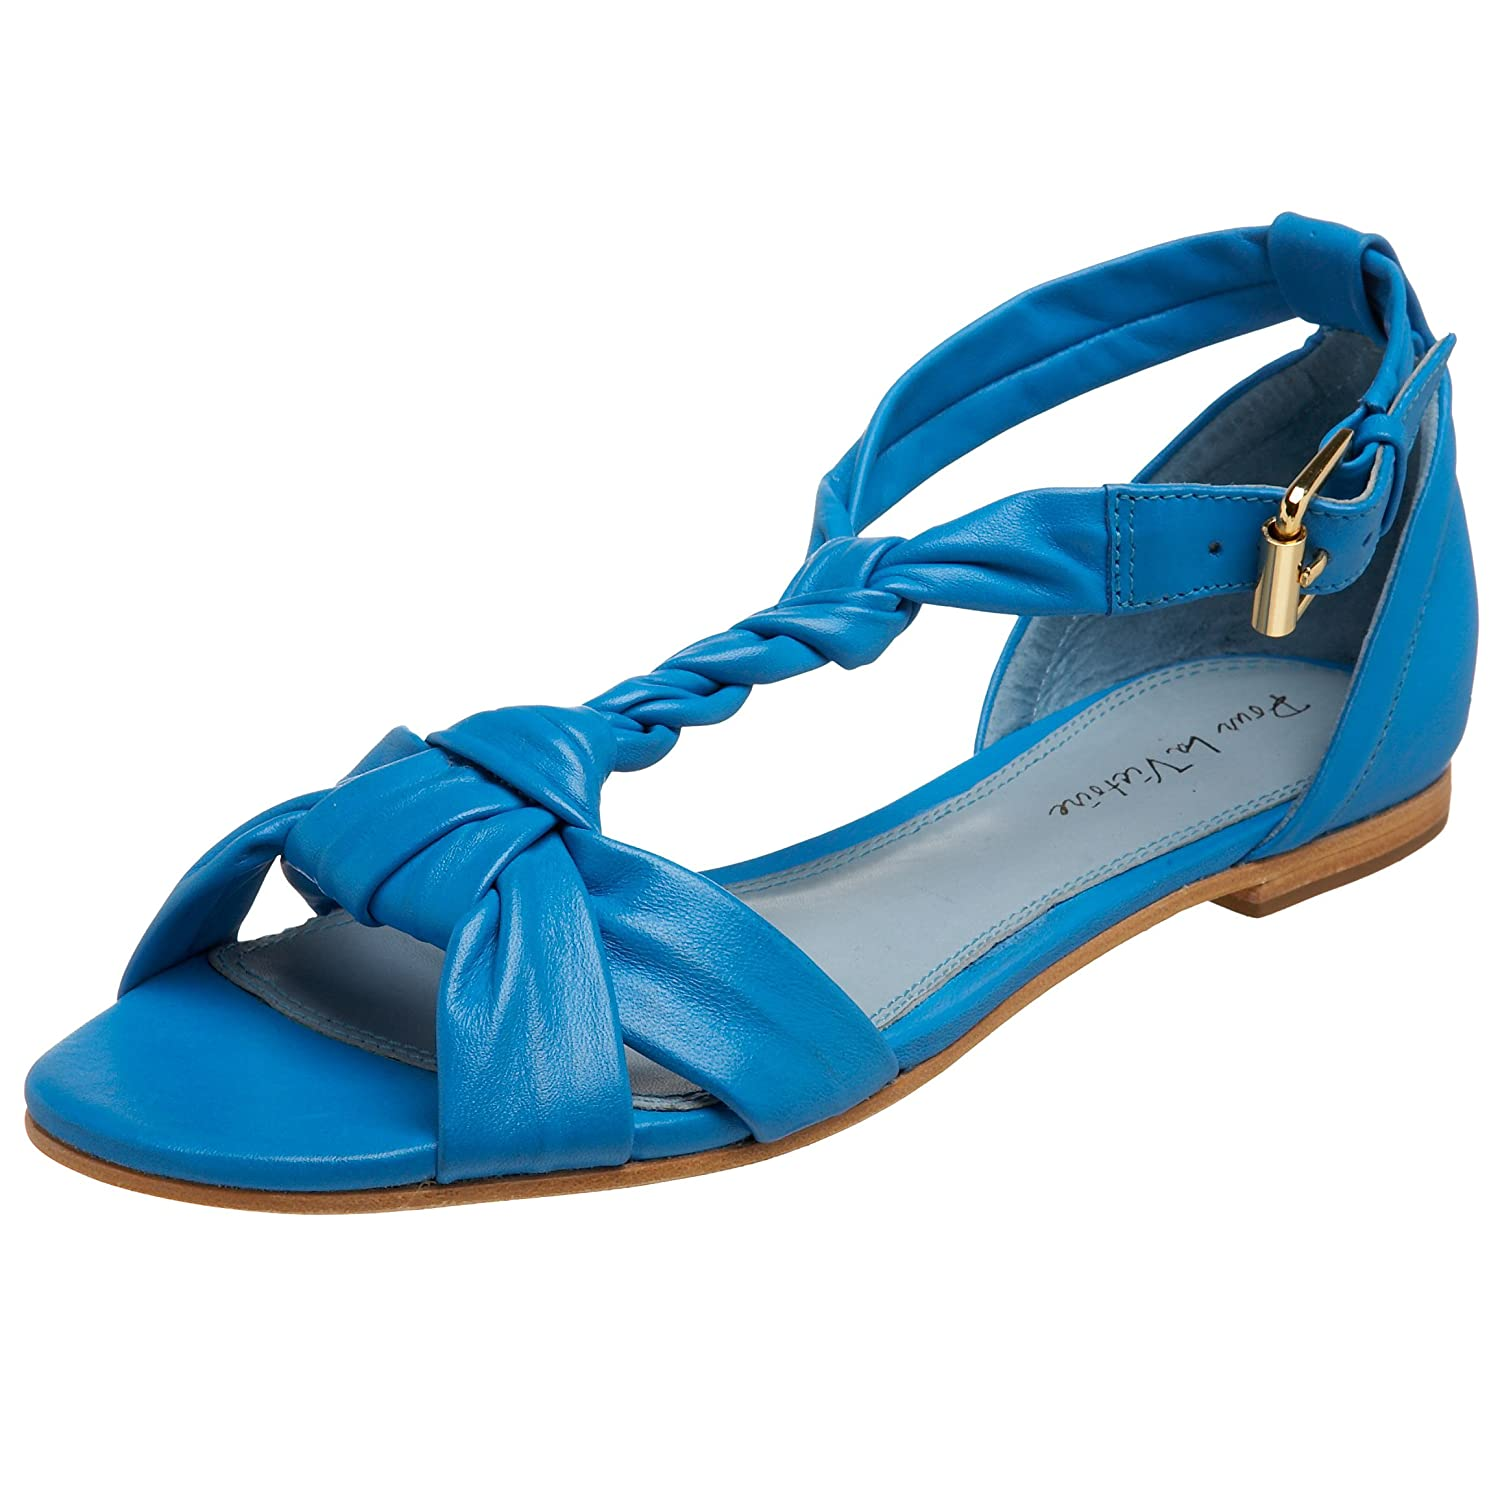 Pour La Victoire Women's Bijan Flat Sandal - Free Overnight Shipping & Return Shipping: Endless.com from endless.com